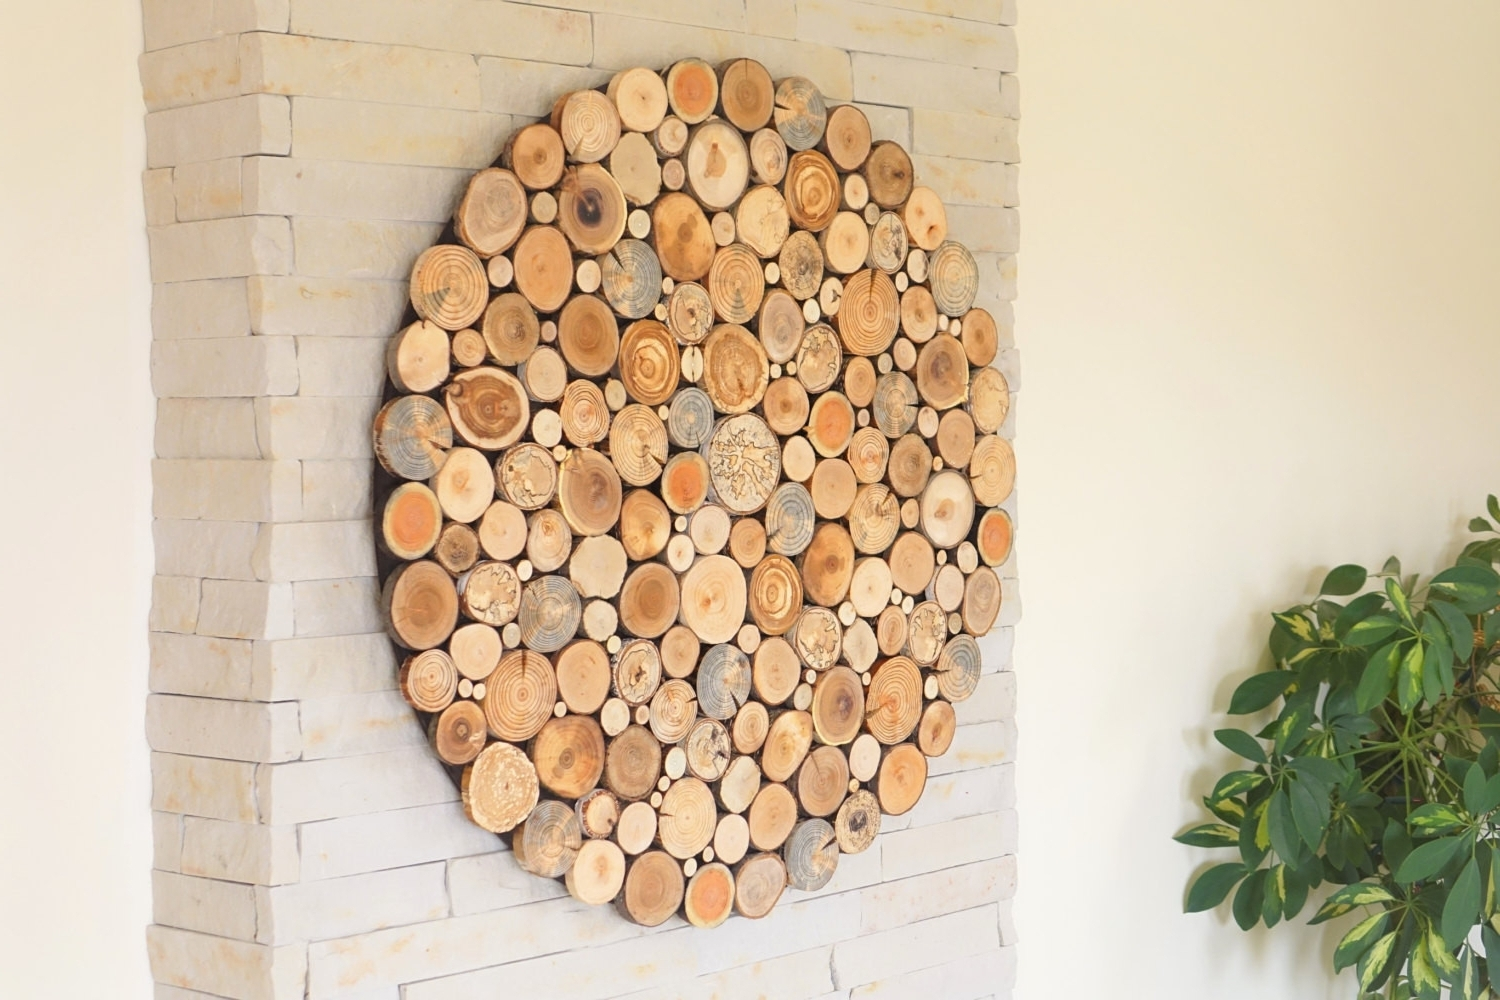 Wood Slice Wall Art Wooden Wall Decoration Purplebirdblog Pertaining To Most Recently Released Wooden Wall Art (View 6 of 15)